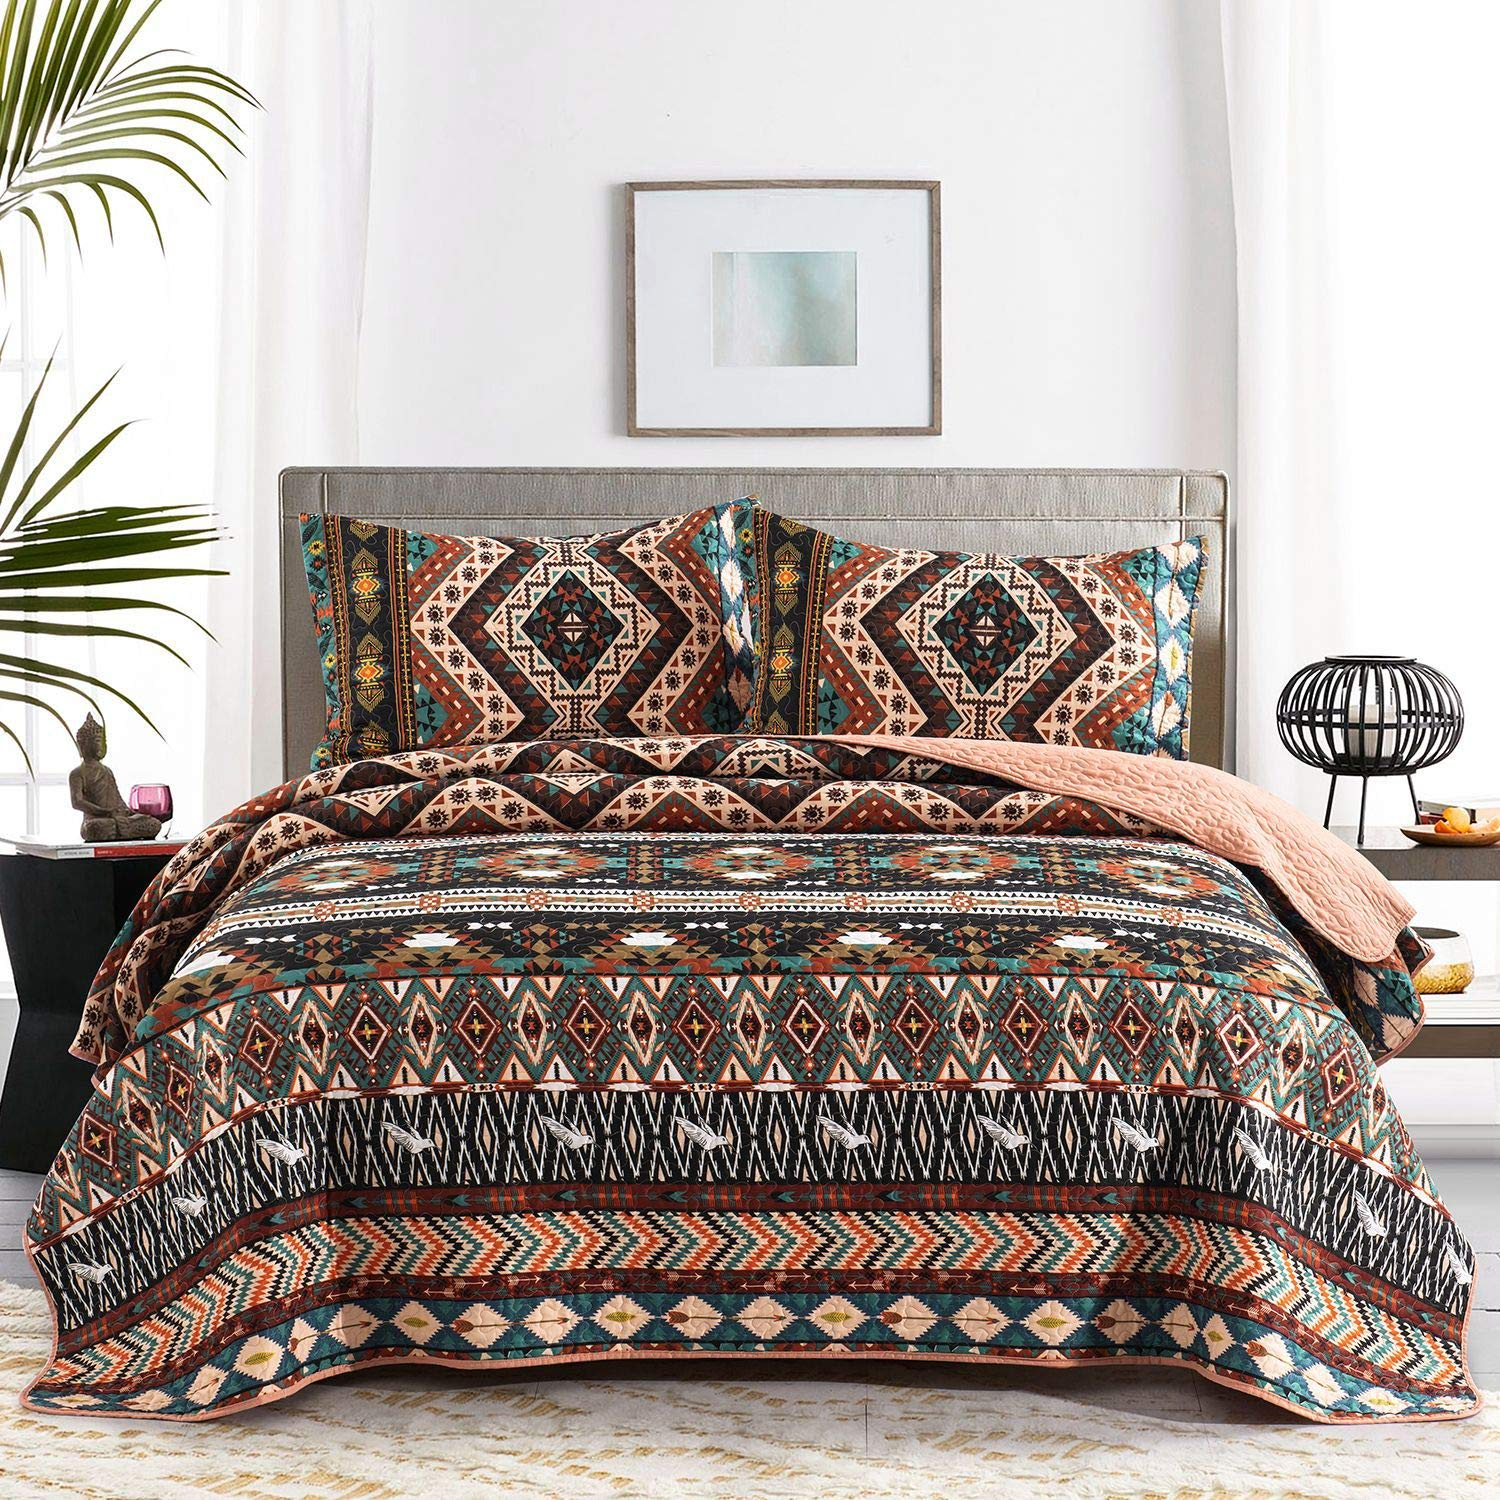 "HONOVA Boho King Quilt Set, Southwestern Design Quilted Coverlet with Birds Pattern Print, Soft Microfiber Bedspreads 90""x106"" with 2 Pillow Shams - Lightweight Design for All-Season"